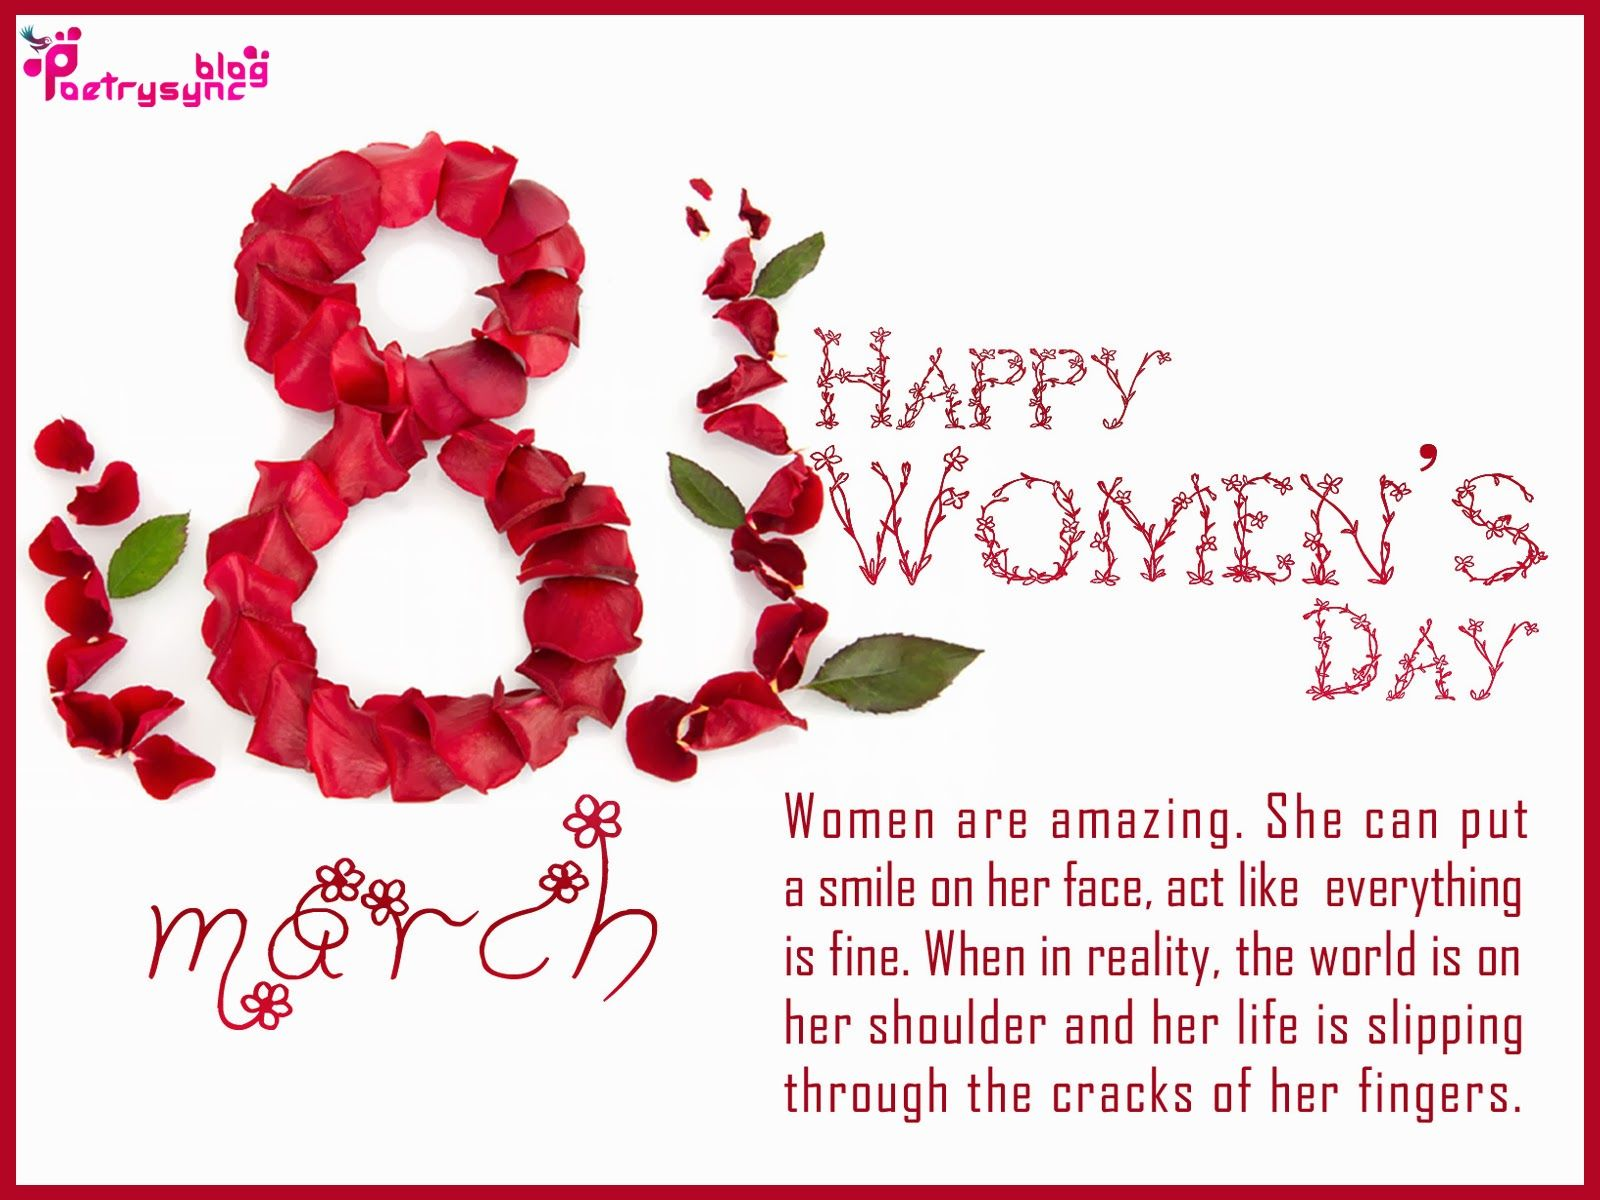 Happy international womens day wishes and greetings message sms happy international womens day wishes and greetings message sms card image kristyandbryce Images